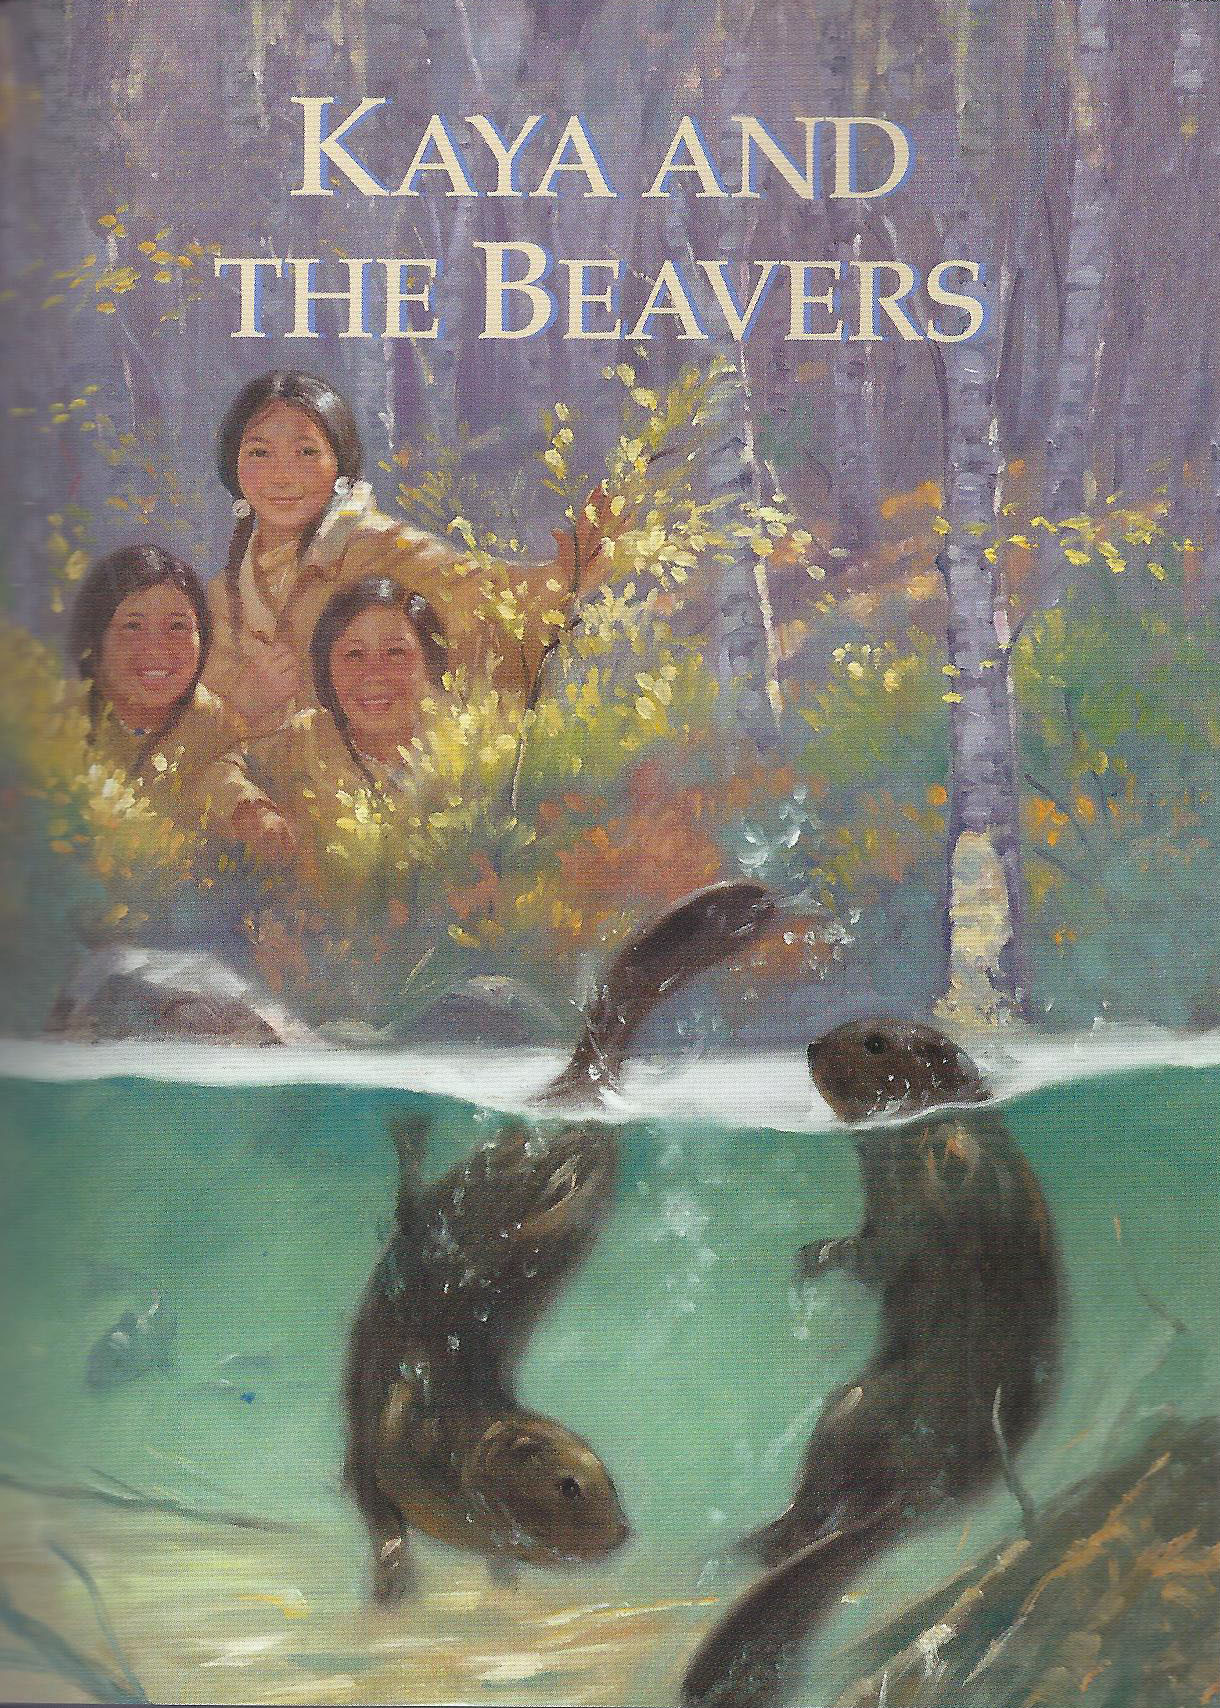 Kaya and the Beavers